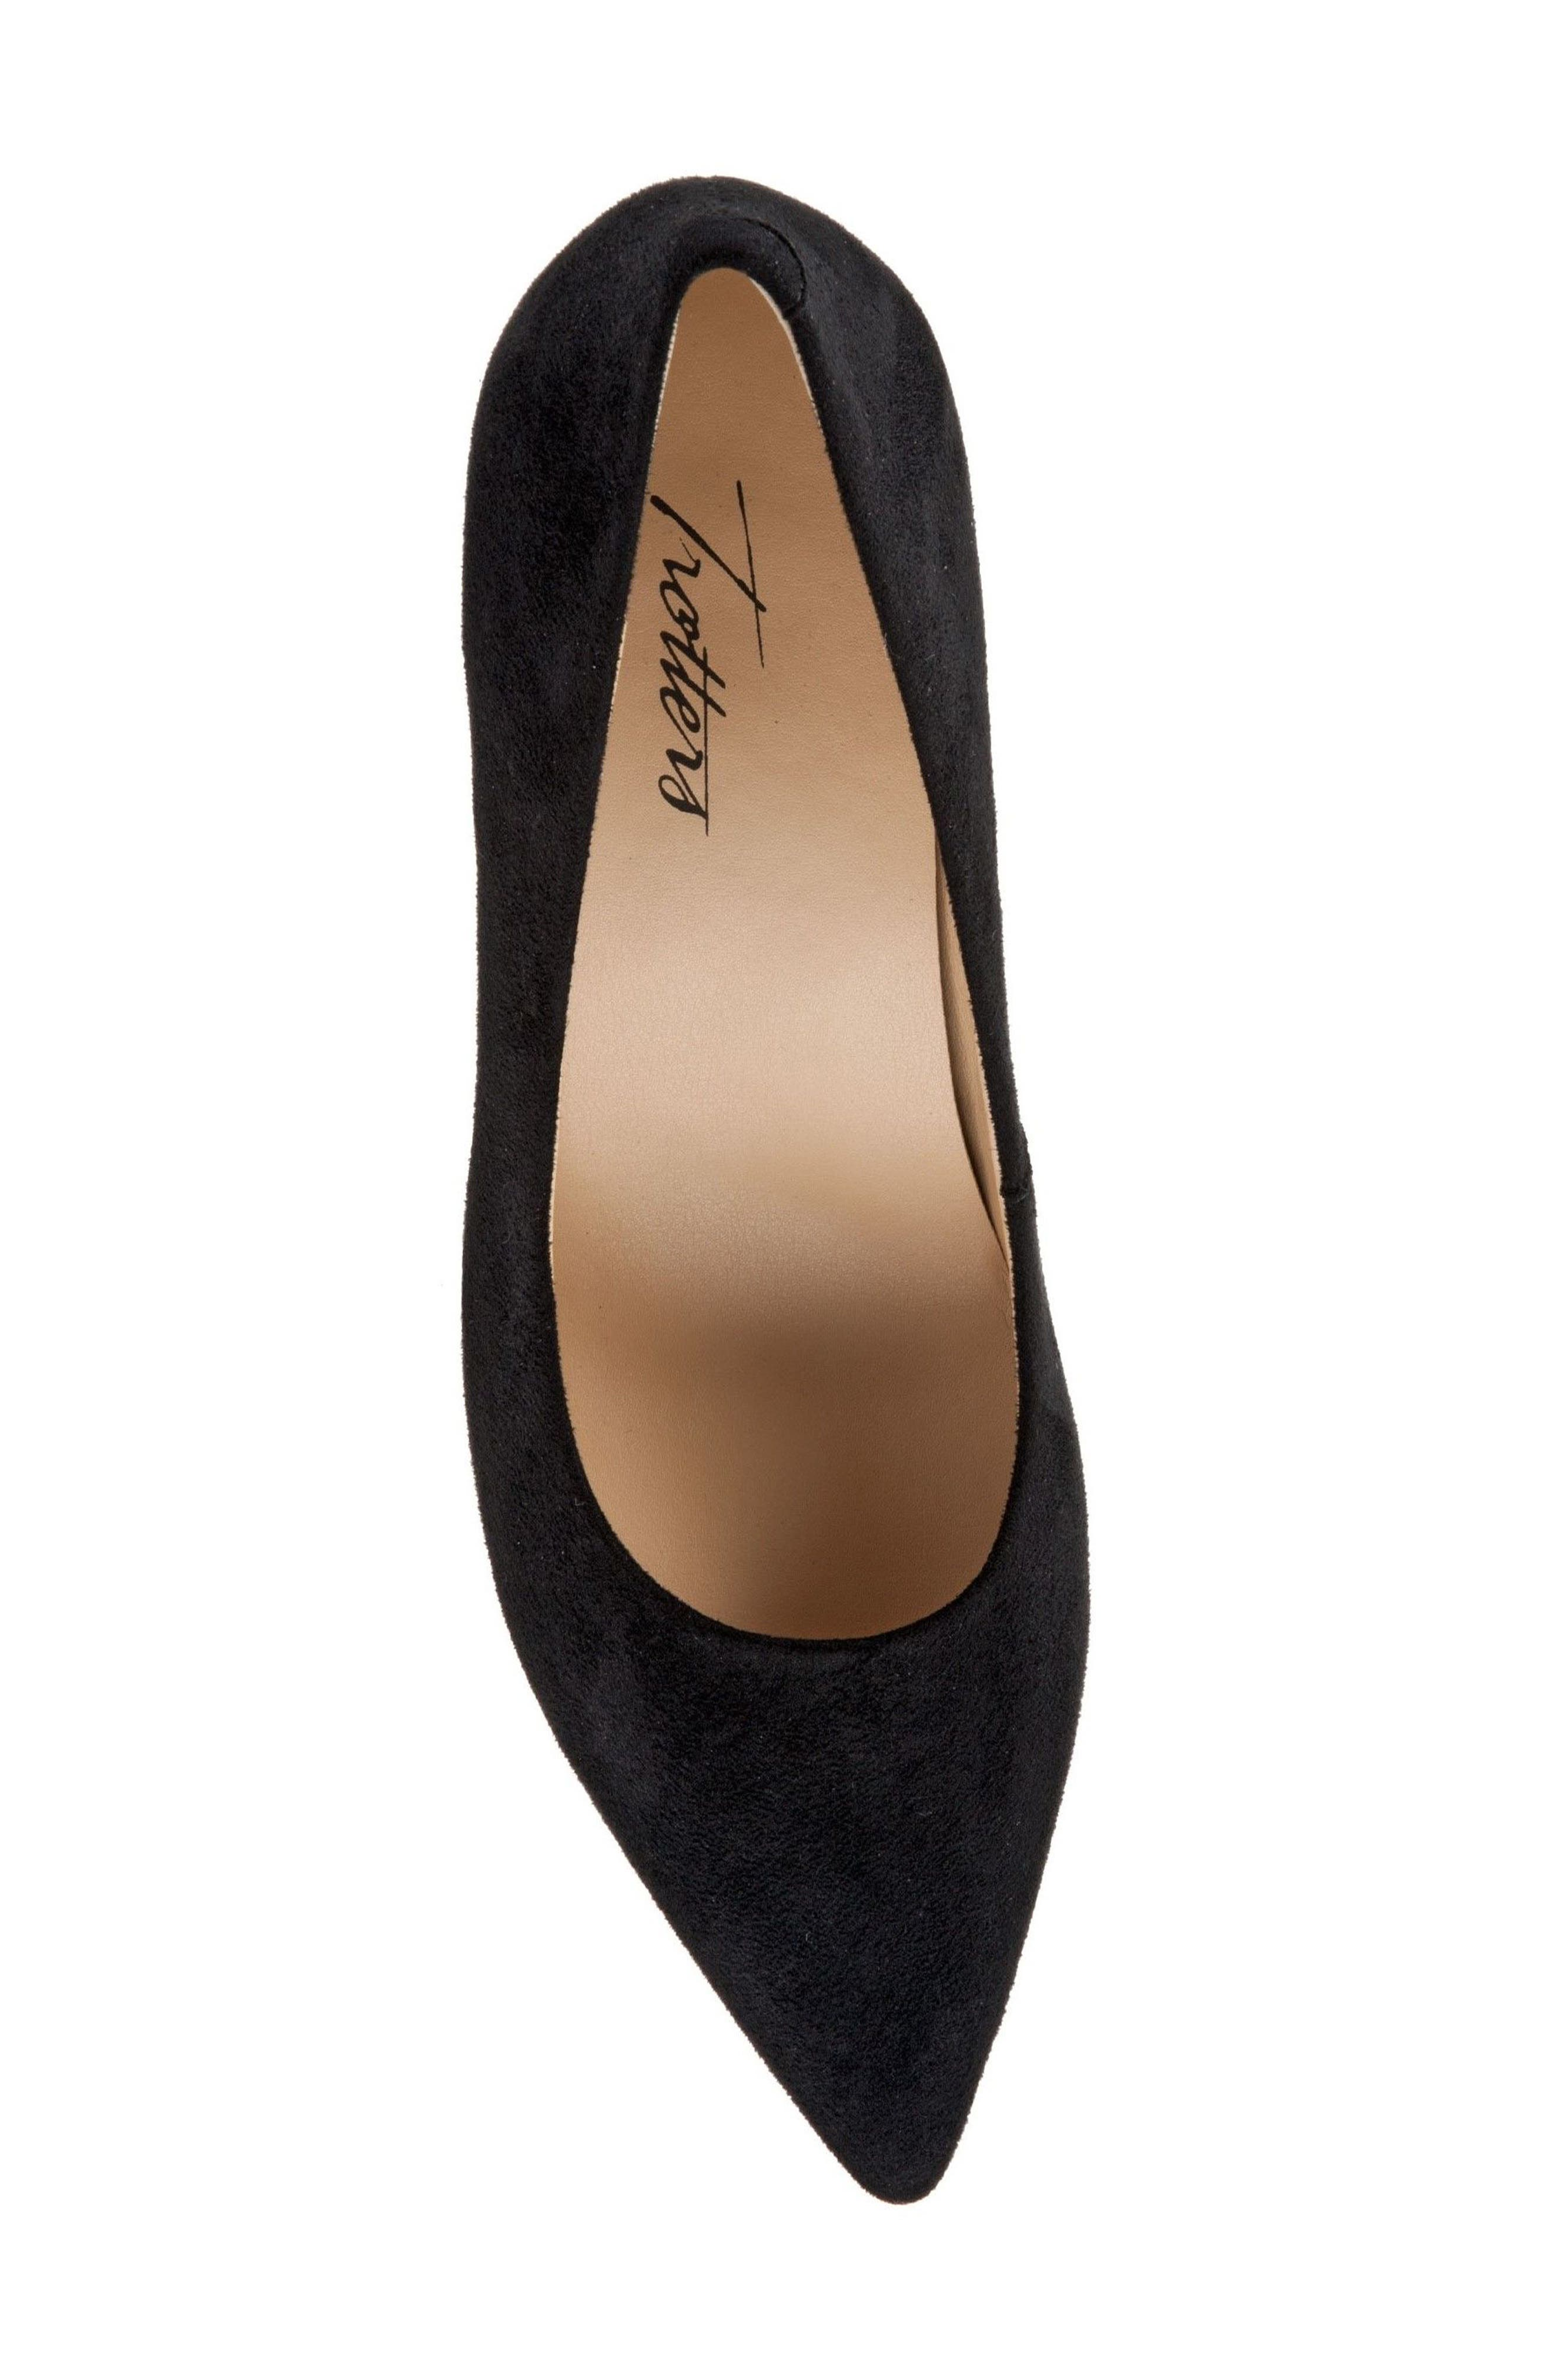 TROTTERS, Noelle Pointy Toe Pump, Alternate thumbnail 5, color, BLACK FABRIC